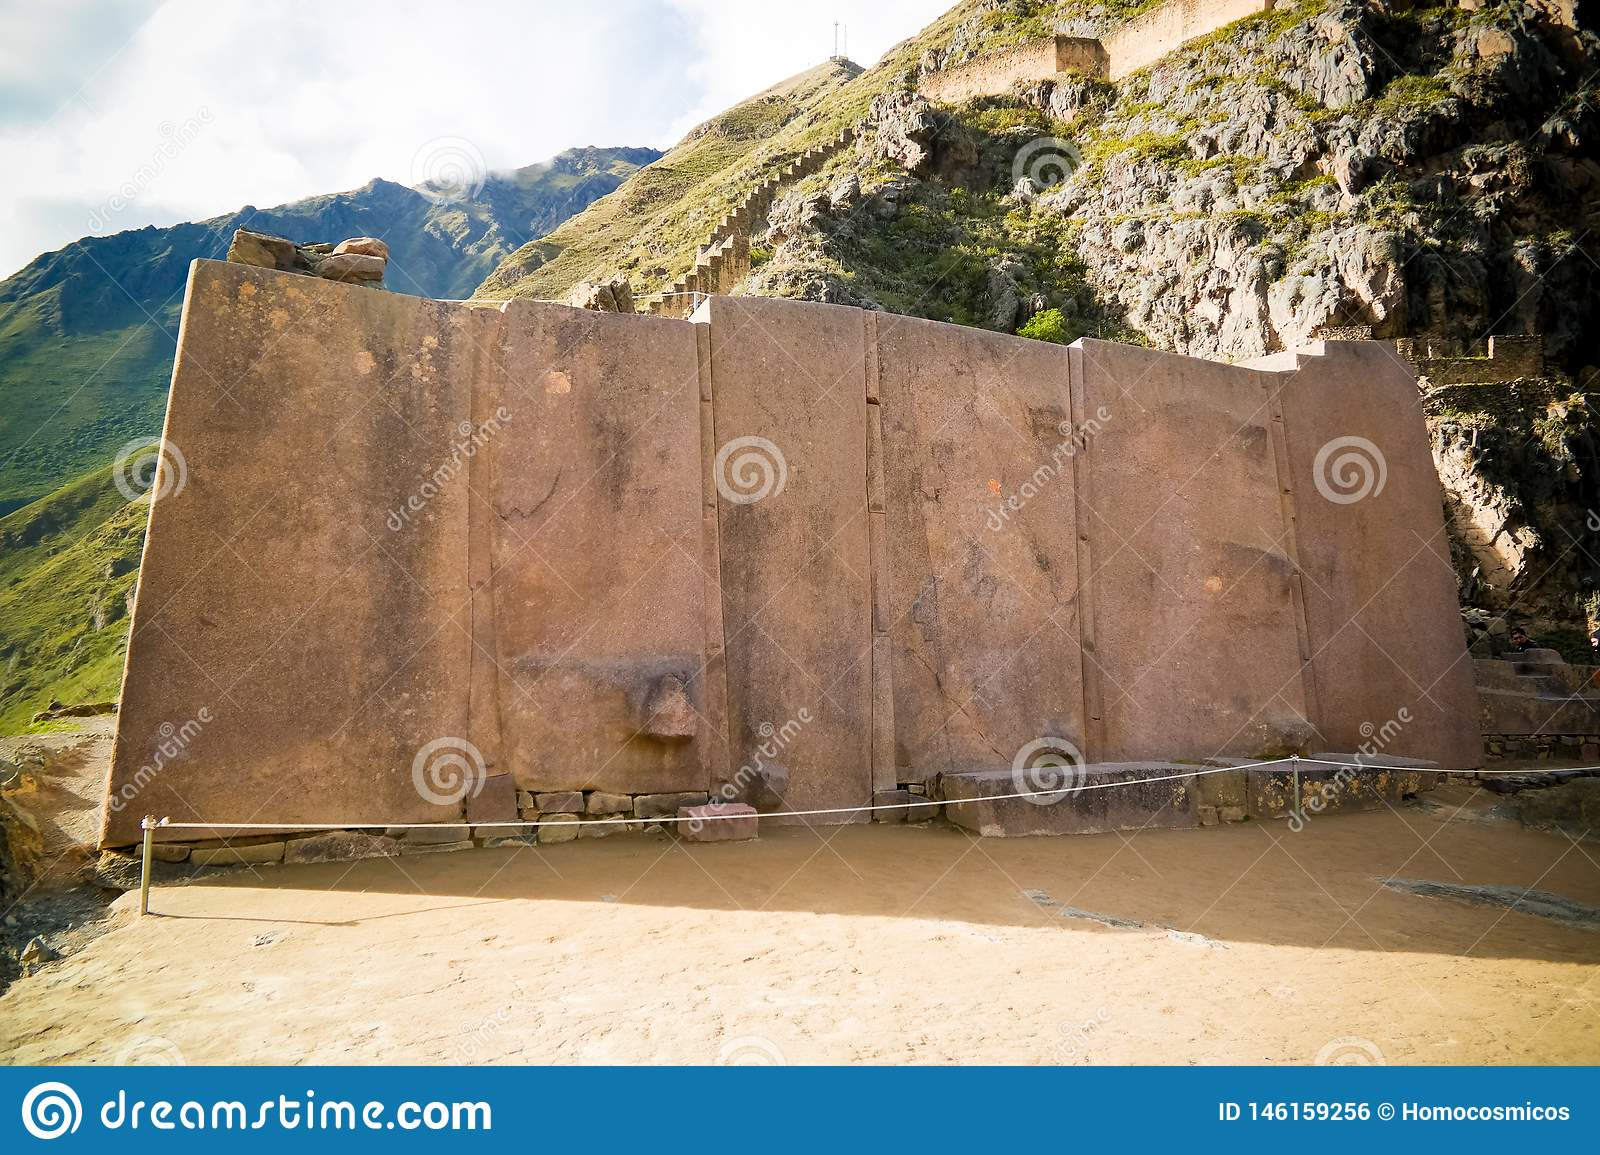 Wall of the Six Monoliths at Ollantaytambo archaeological site, Cuzco, Peru